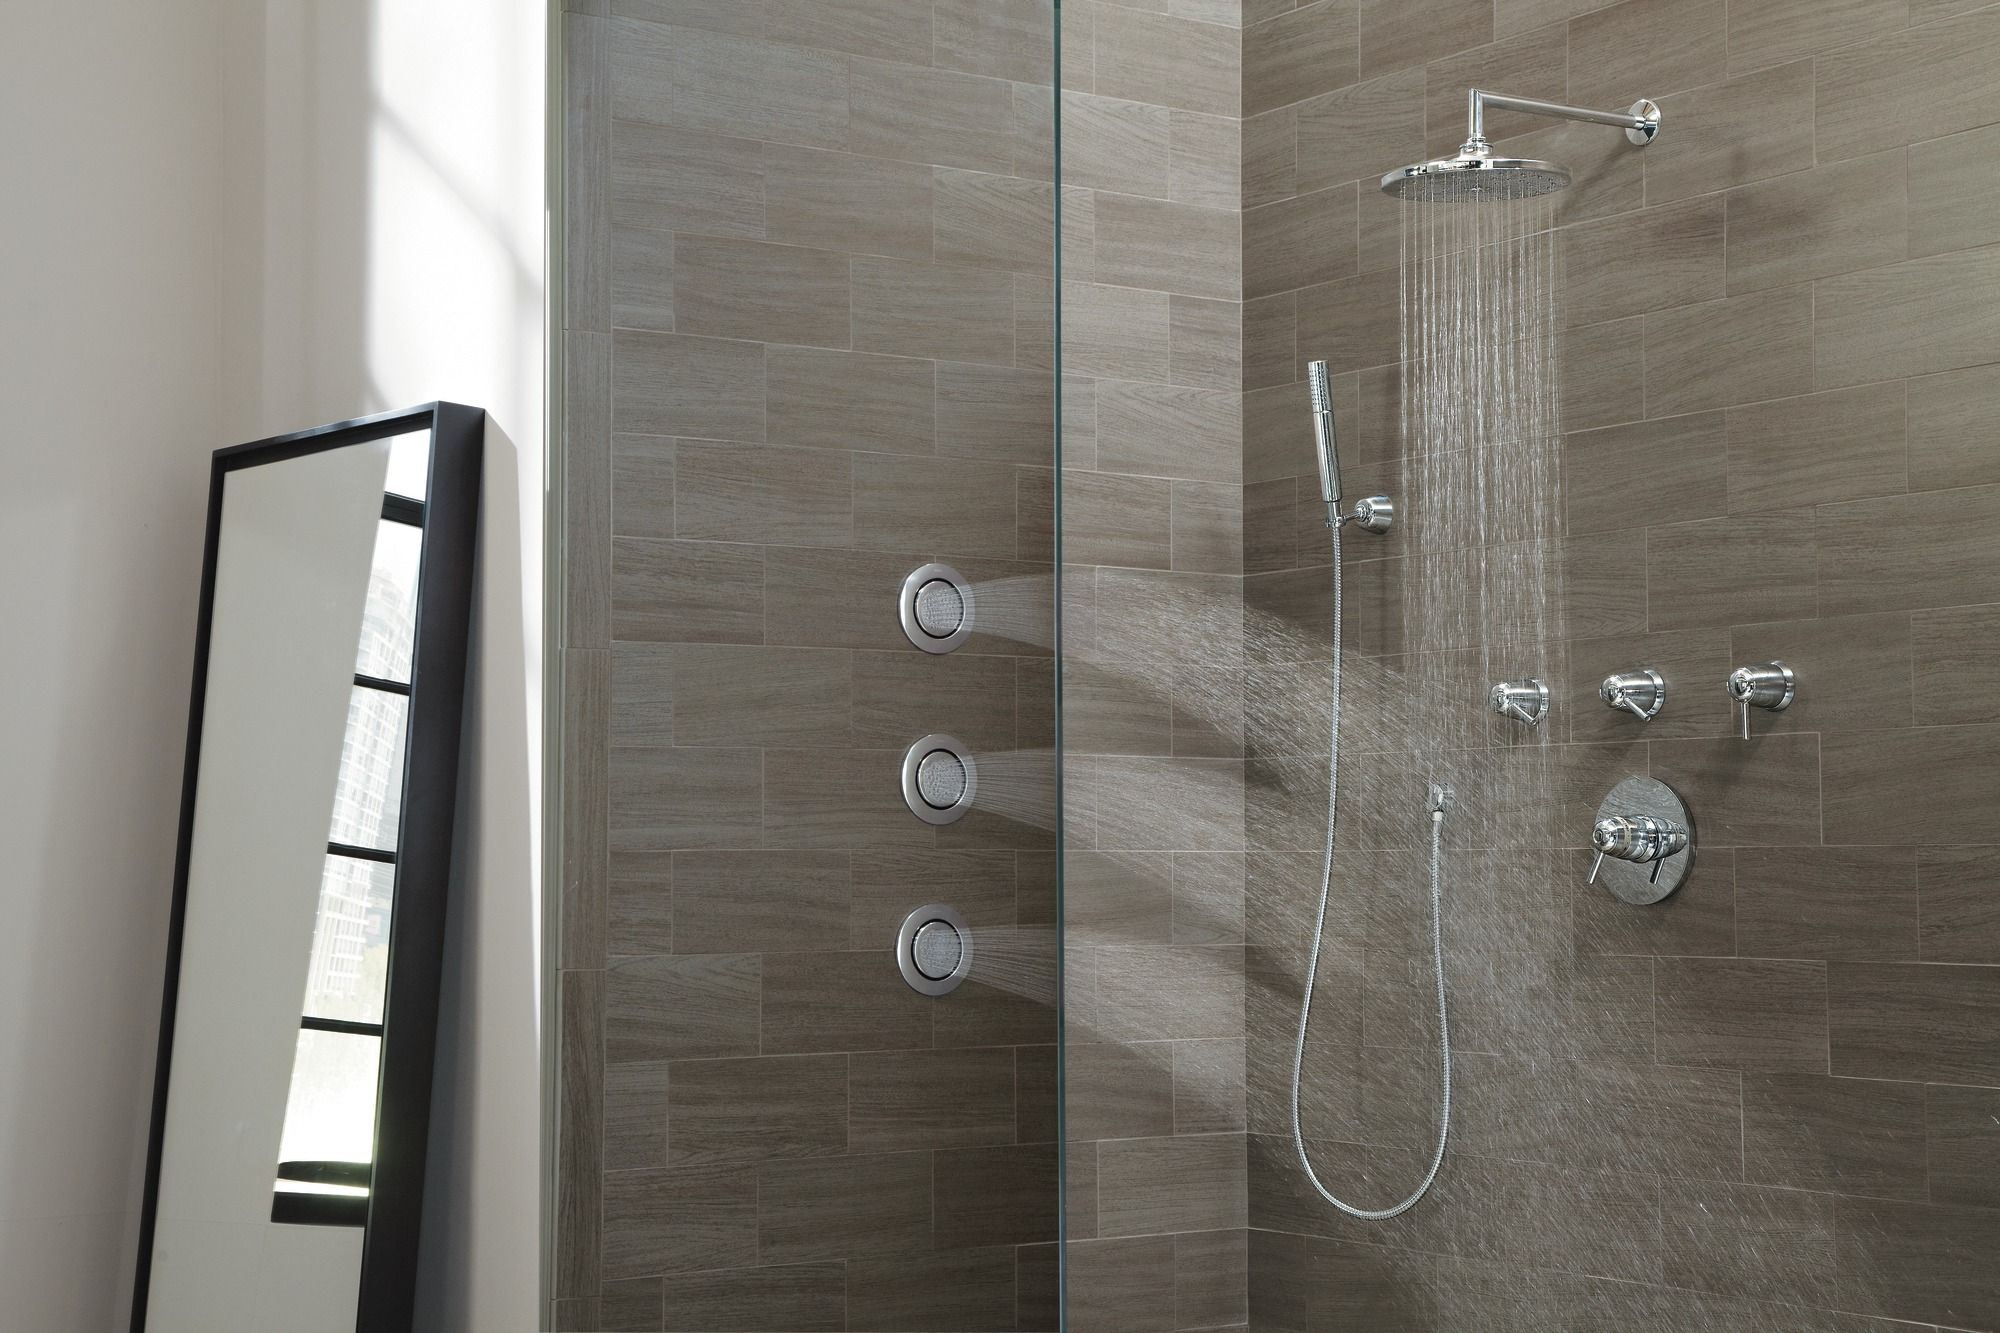 Vertical Spa Systems | Bathroom | Pinterest | Master bathrooms